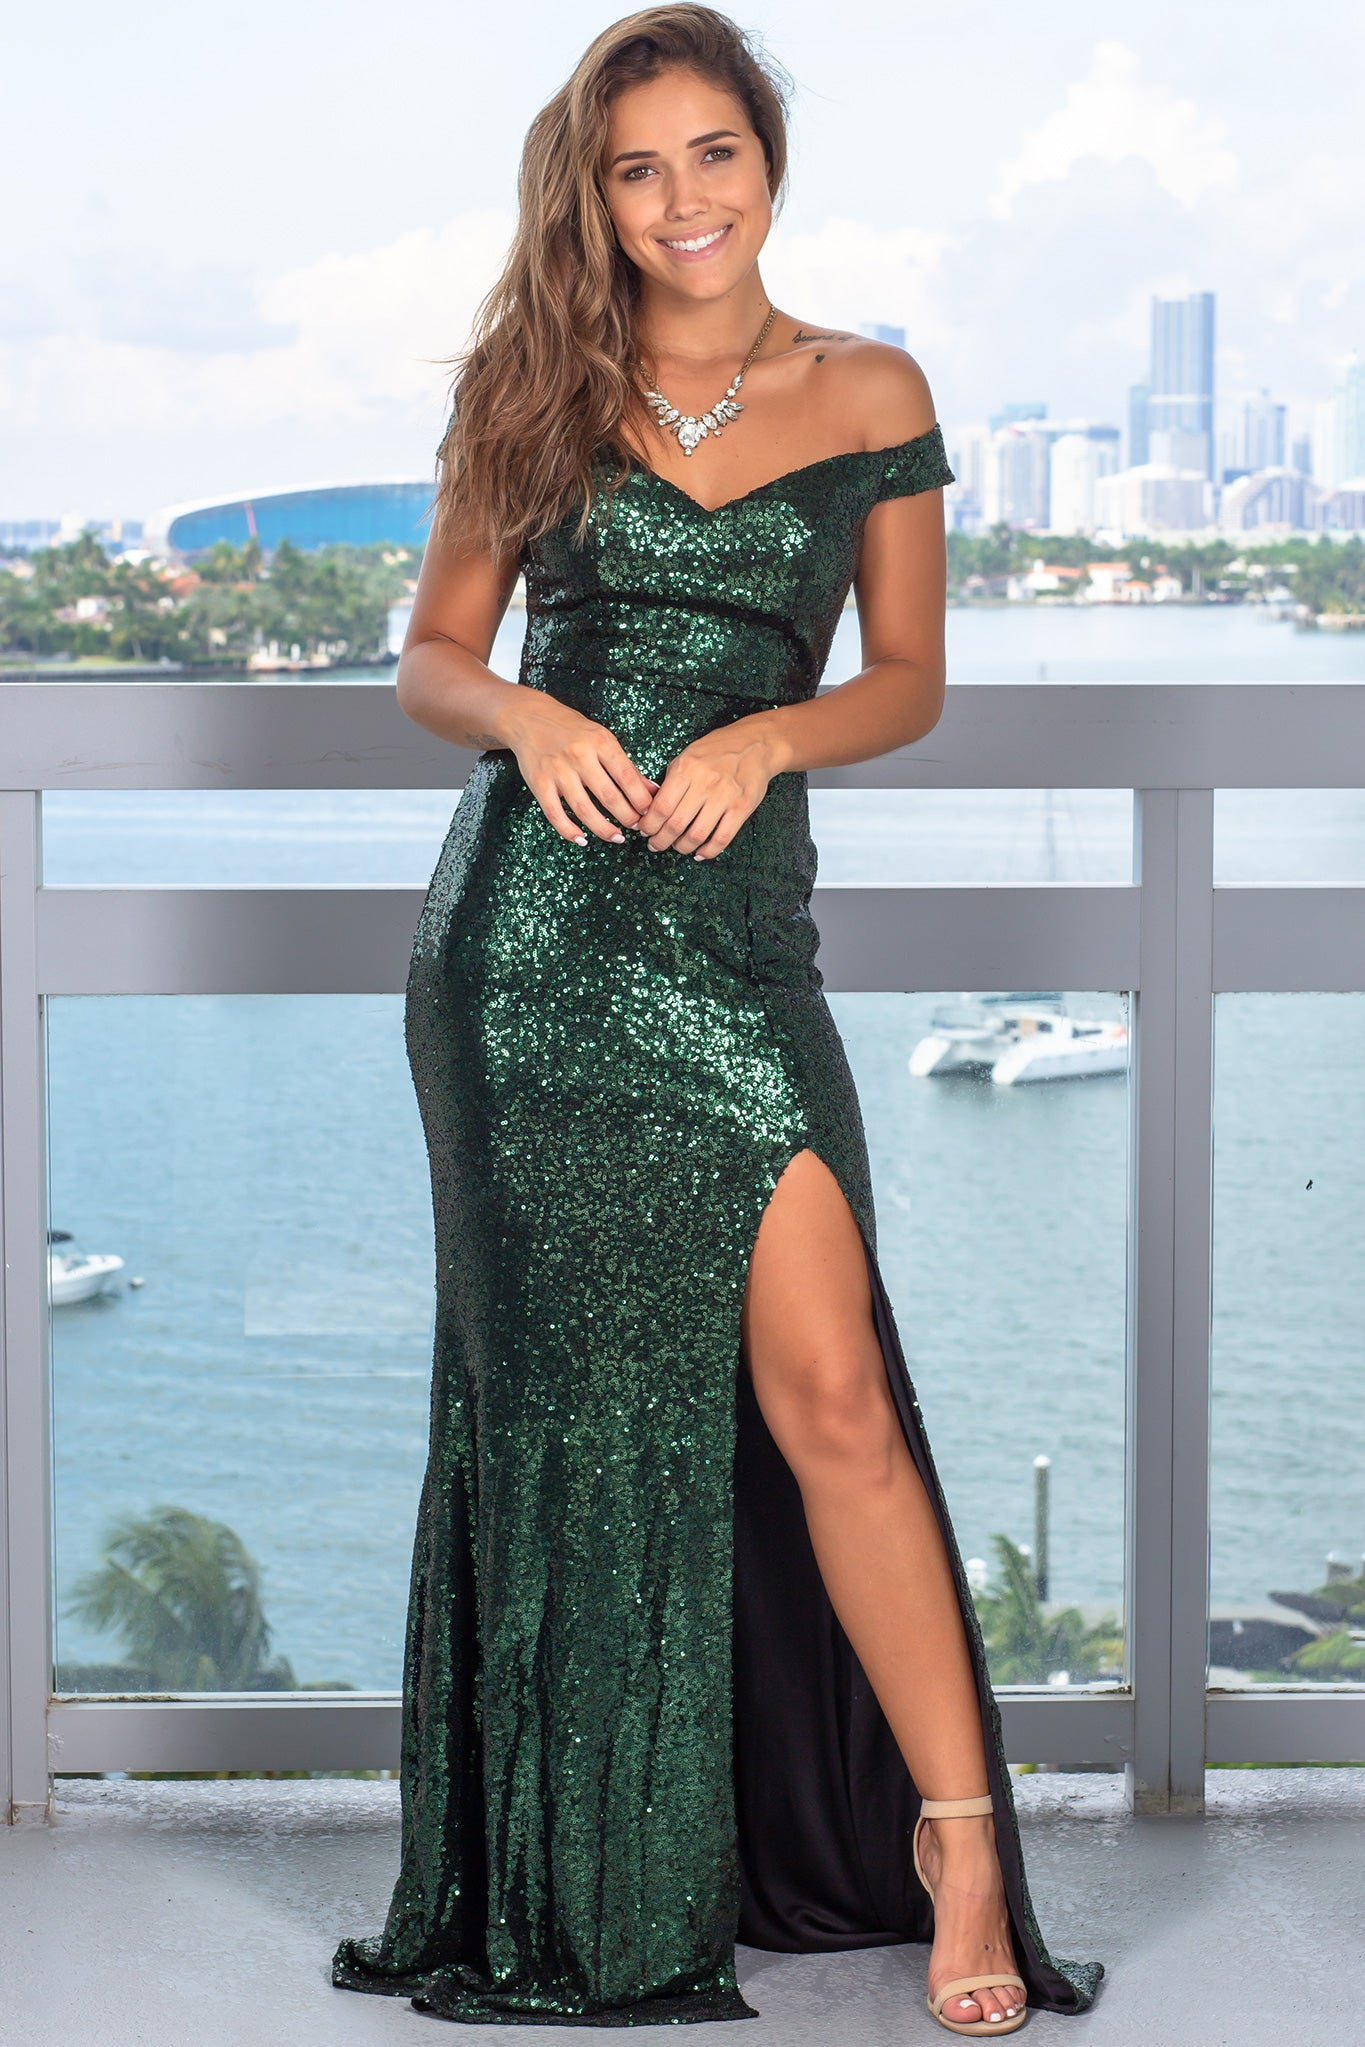 Hunter Green Sequin Maxi Dress with Side Slit